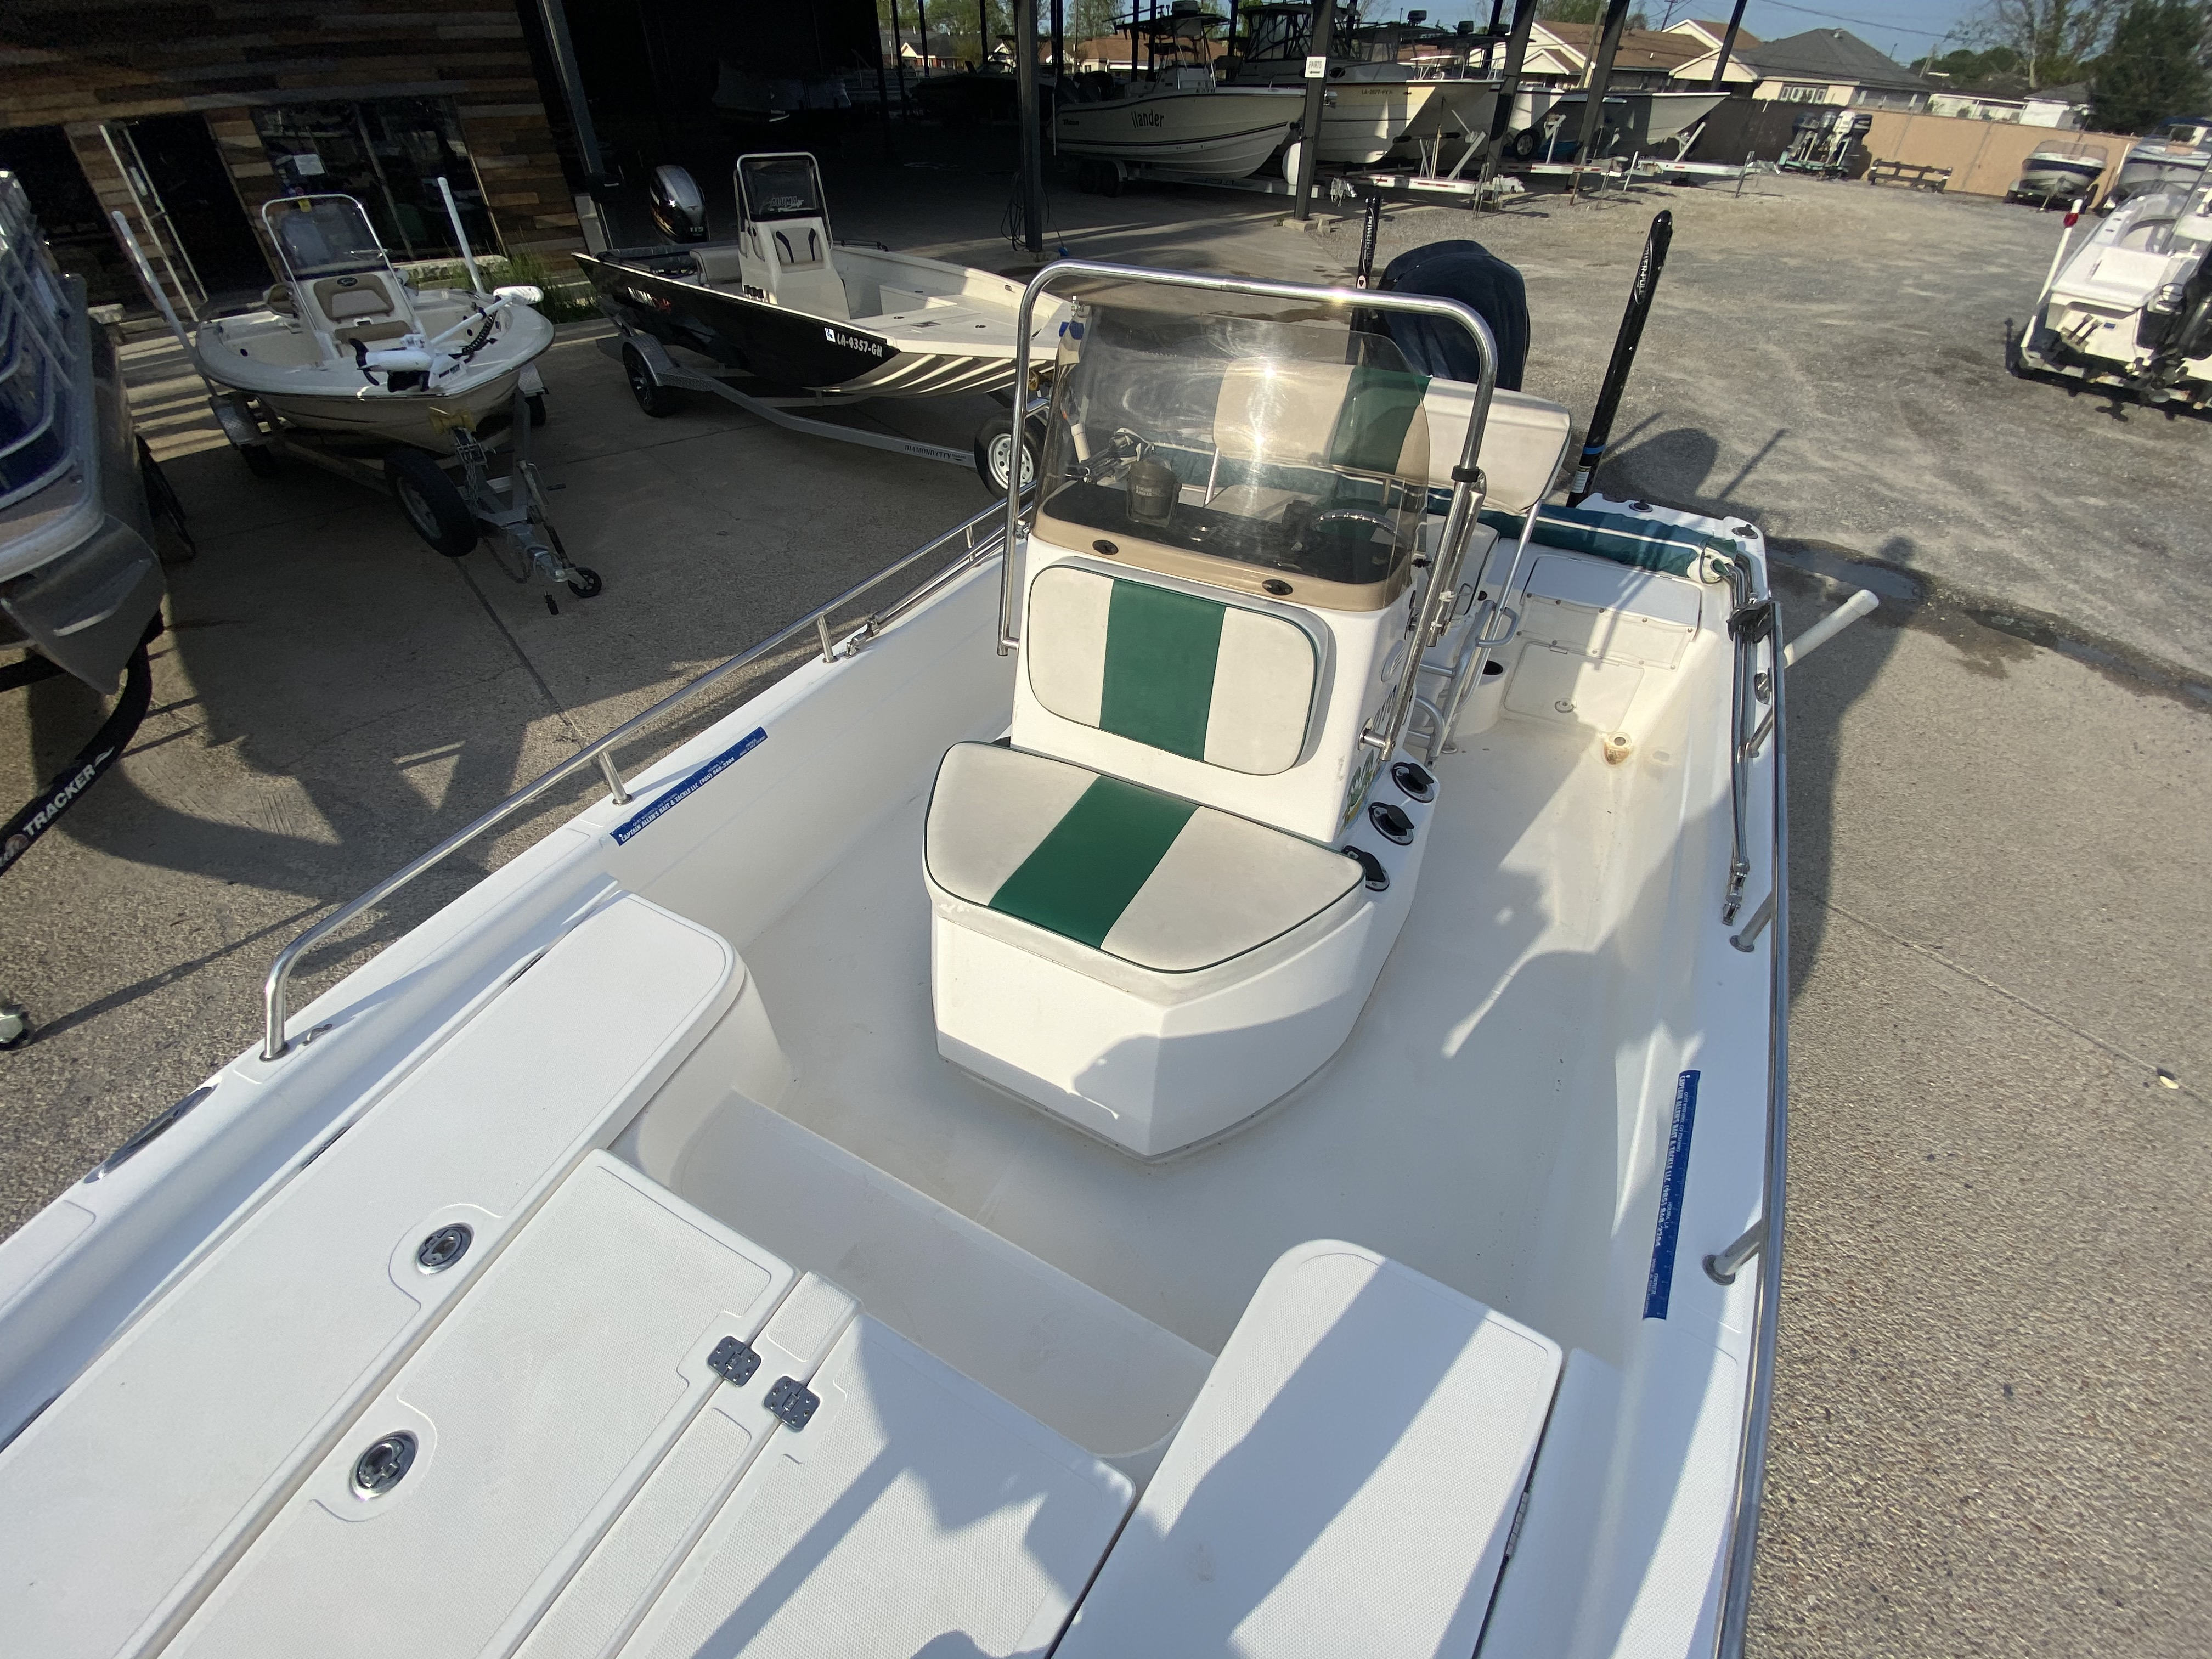 2005 ProGator boat for sale, model of the boat is 2110 CC & Image # 12 of 18